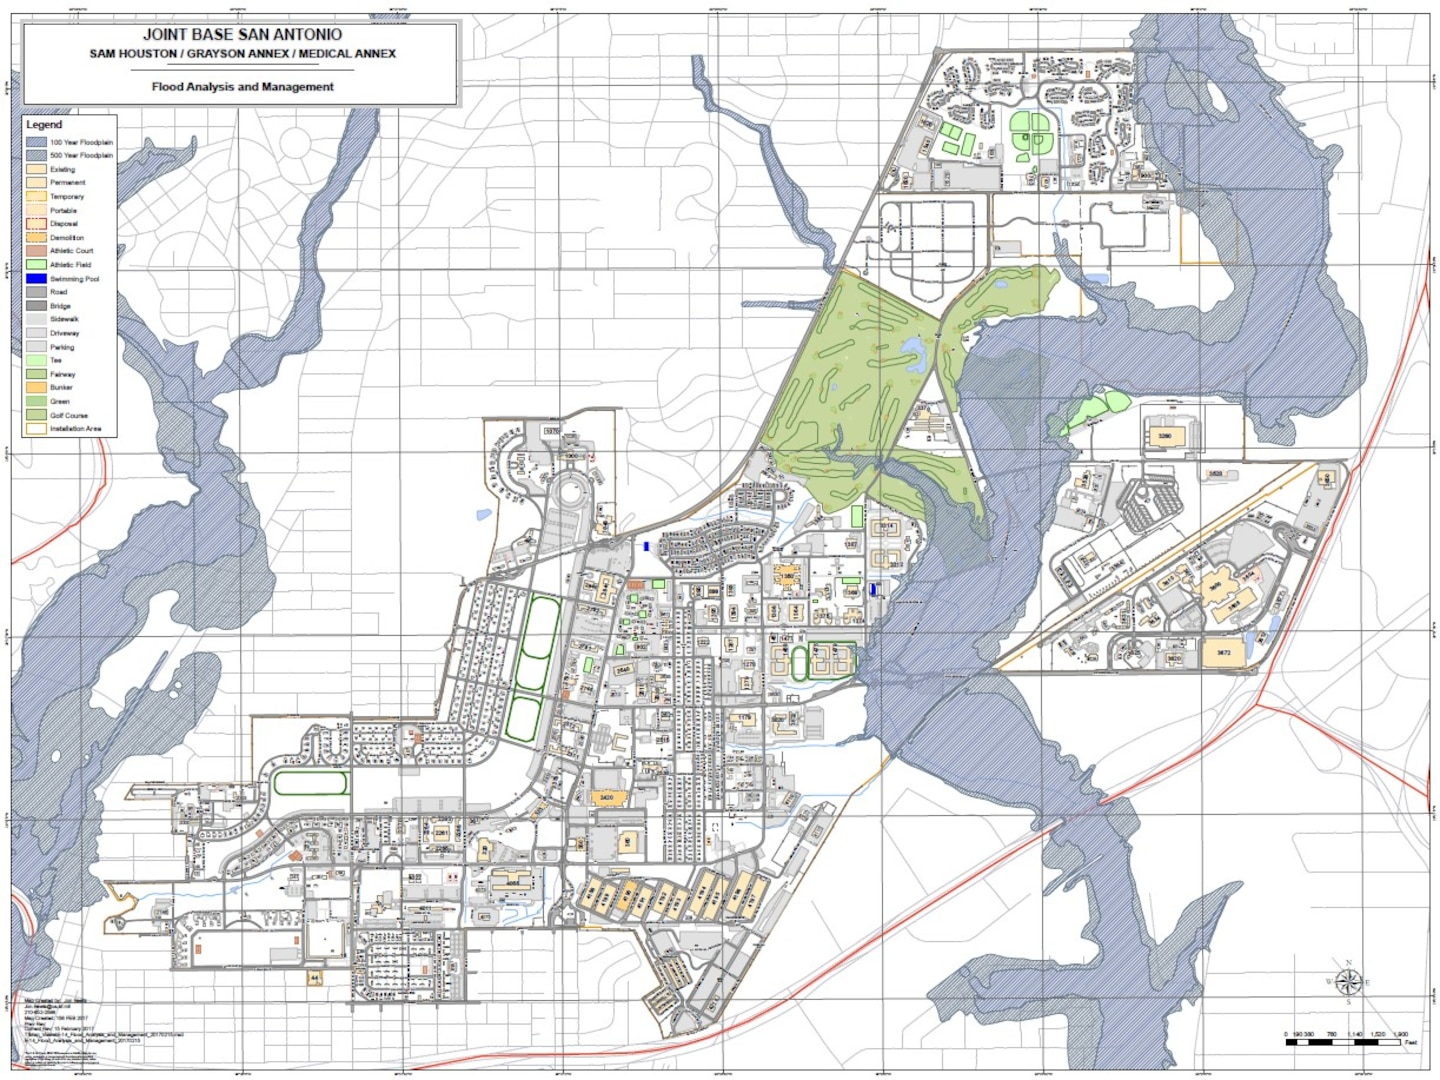 Joint Base San Antonio-Fort Sam Houston flood map. Many Roads may flood, especially around the Benz Engleman Gate and Walters Gate. These low areas are associated with the Salado Creek Floodplain.